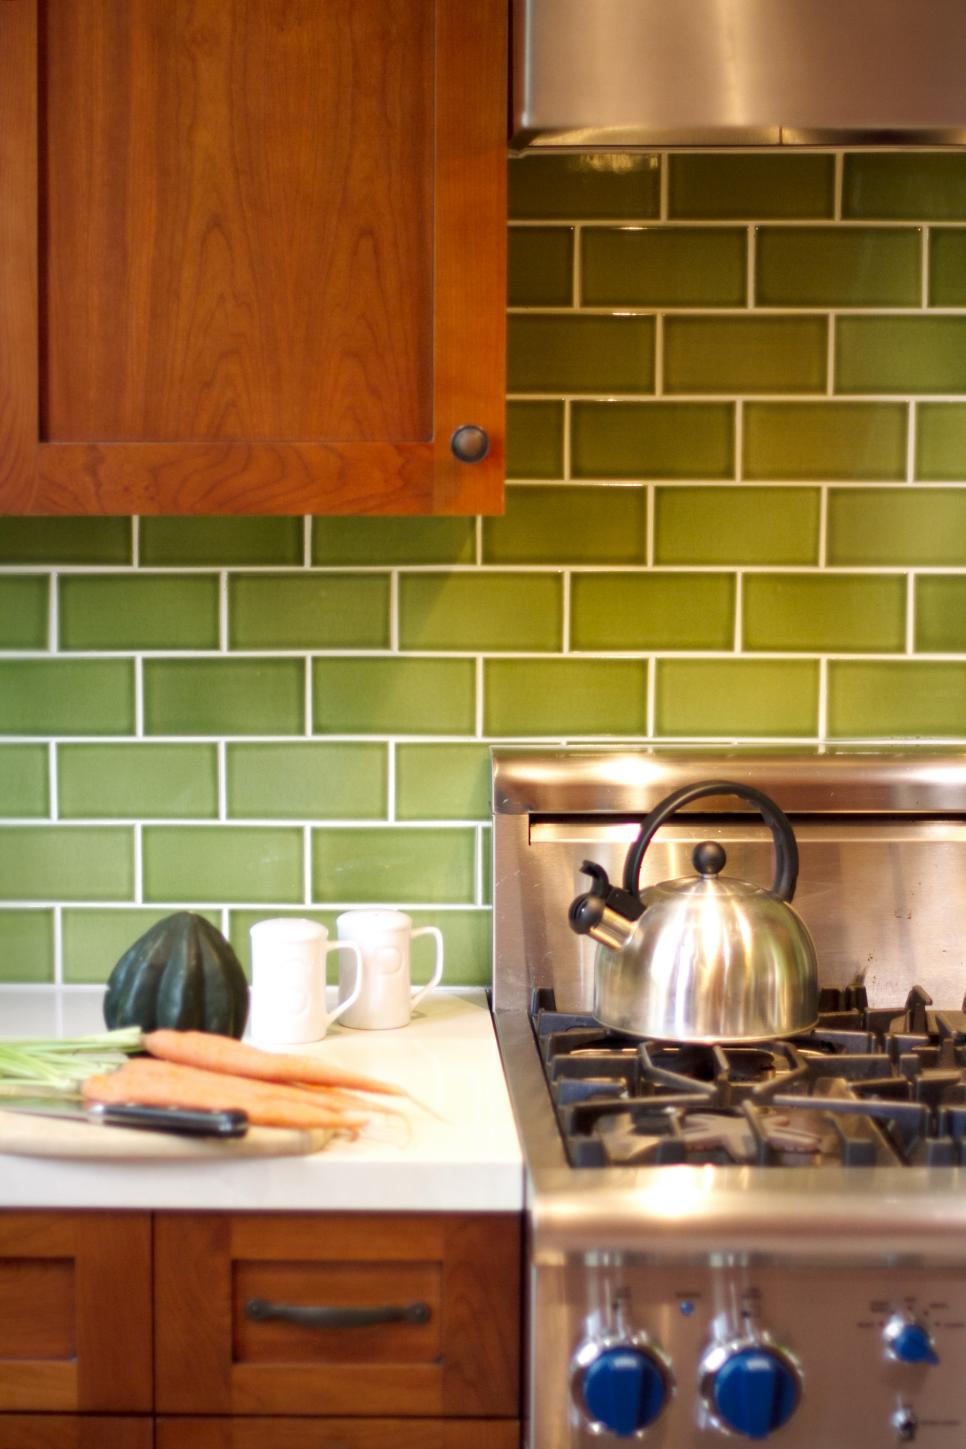 11 Creative Subway Tile Backsplash Ideas – Subway Tile Colors Kitchen